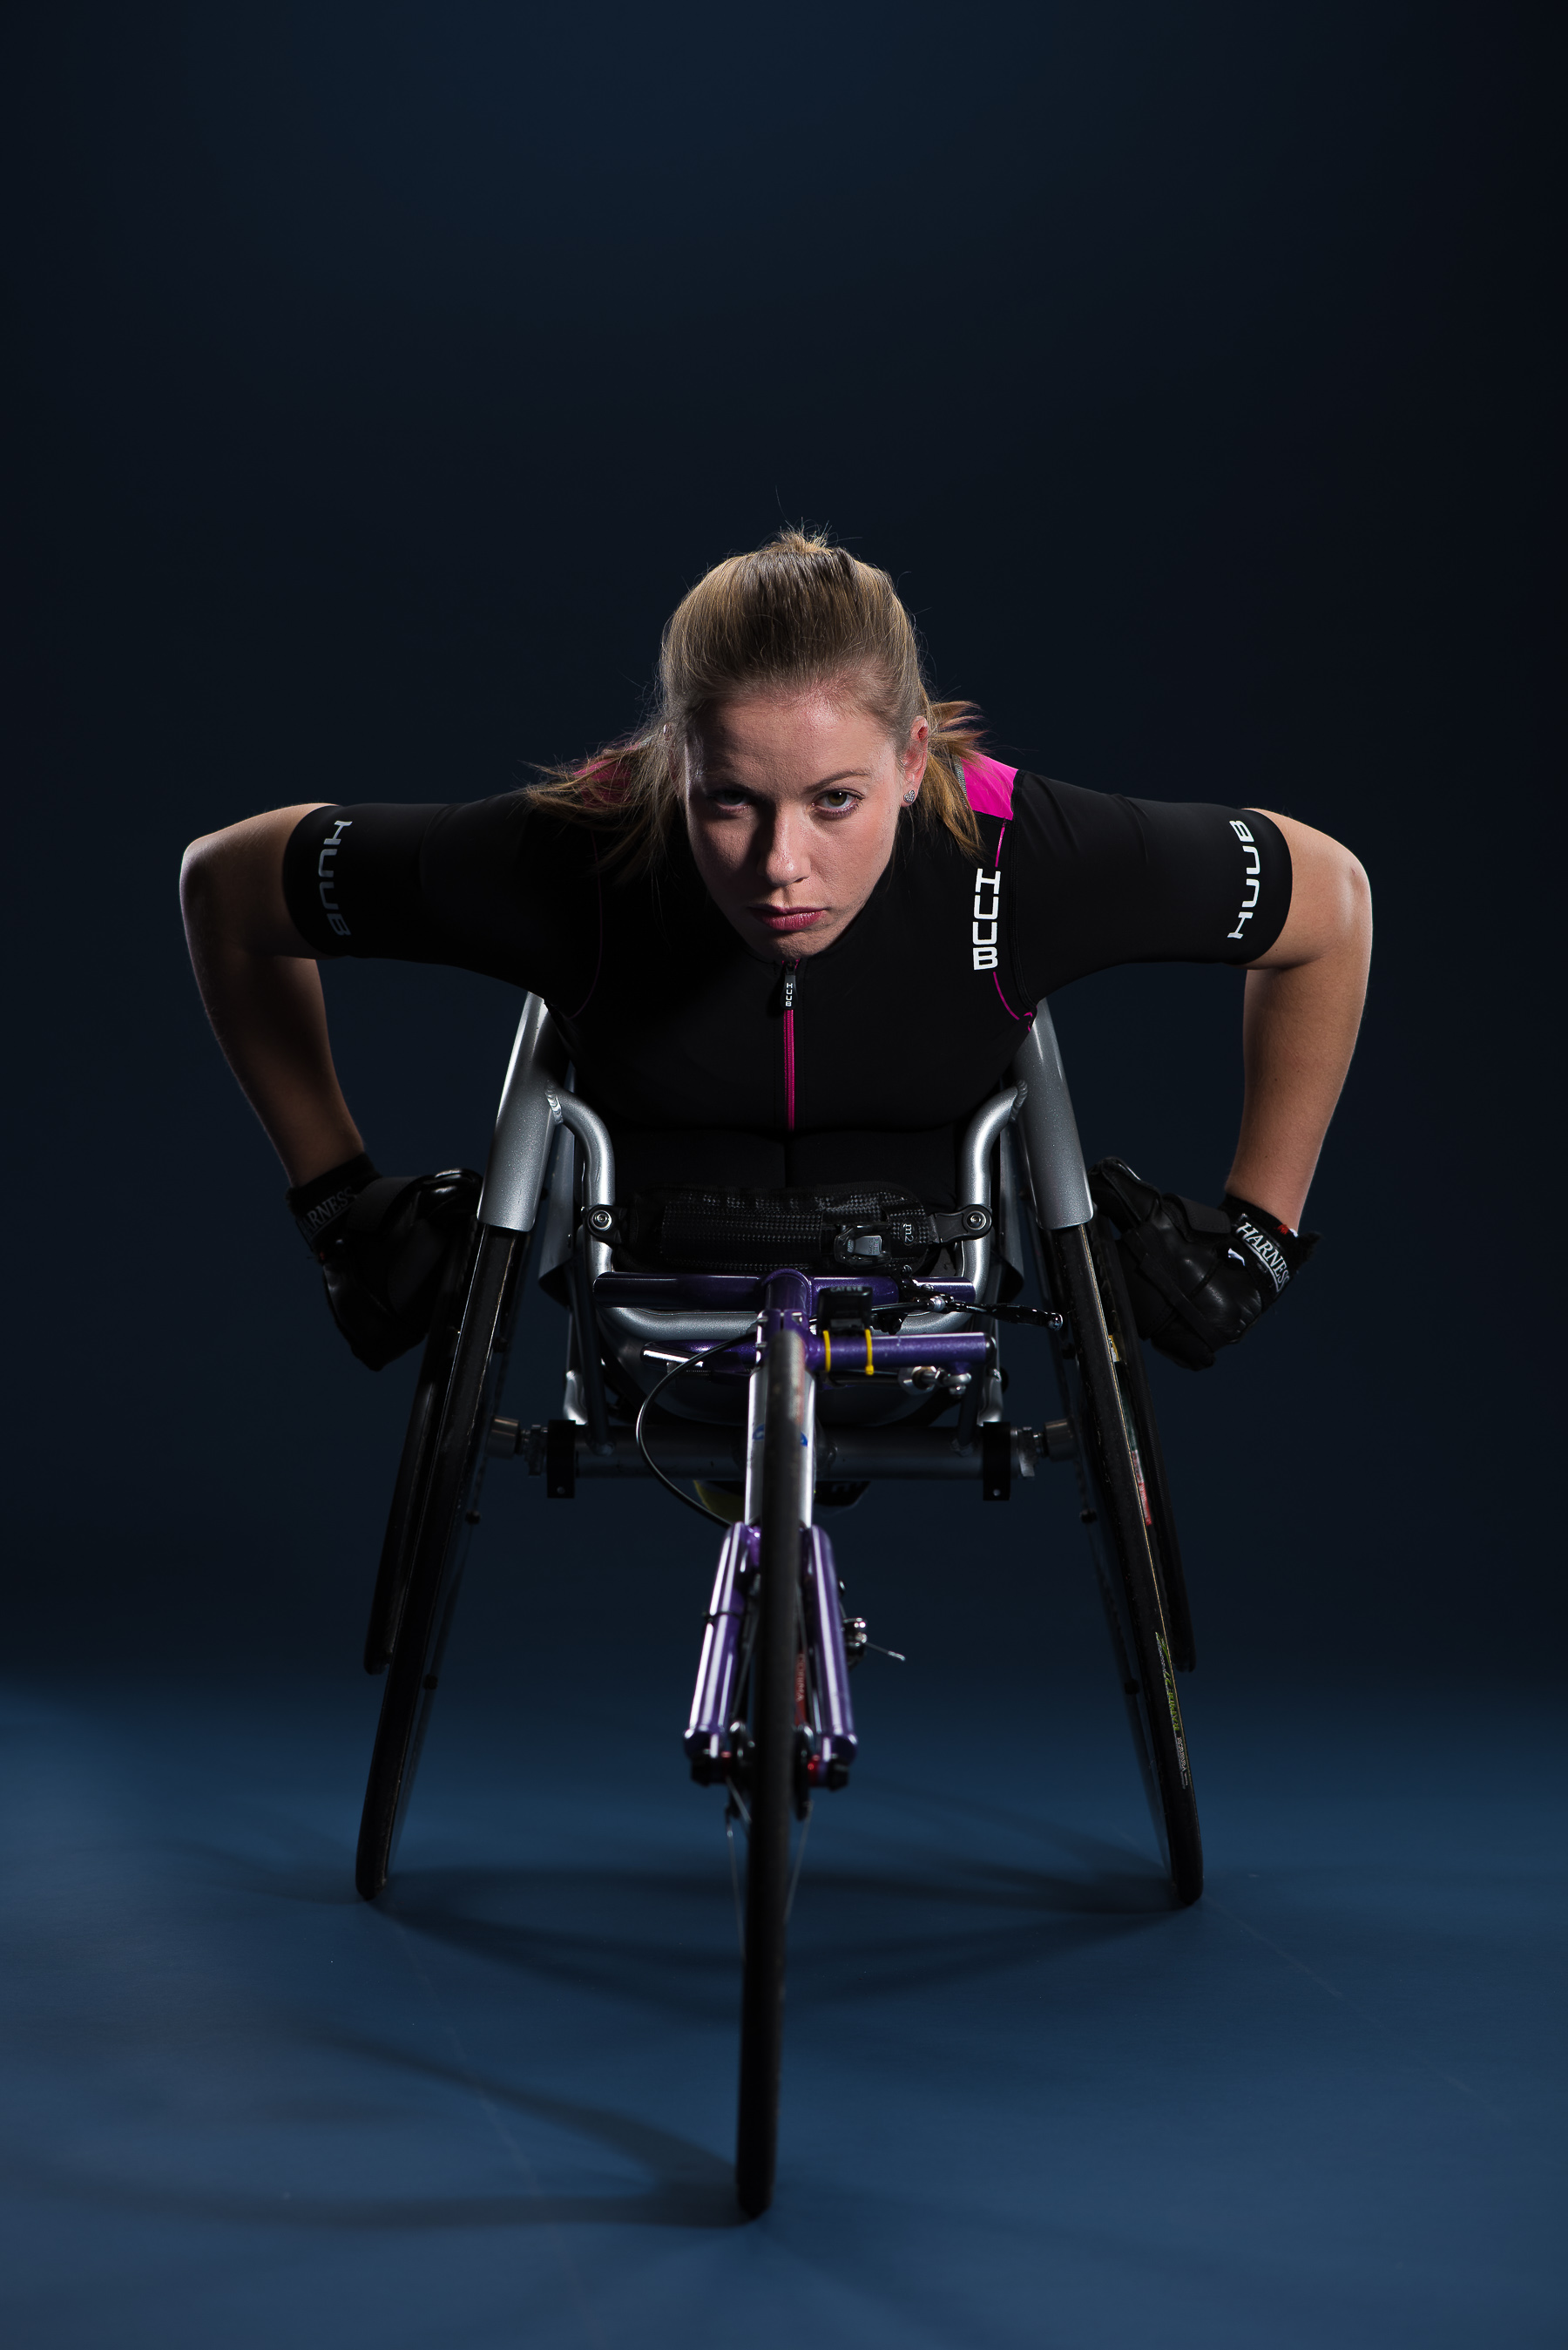 Hannah Cockcroft paralympic athlete photographed by Cactus Images